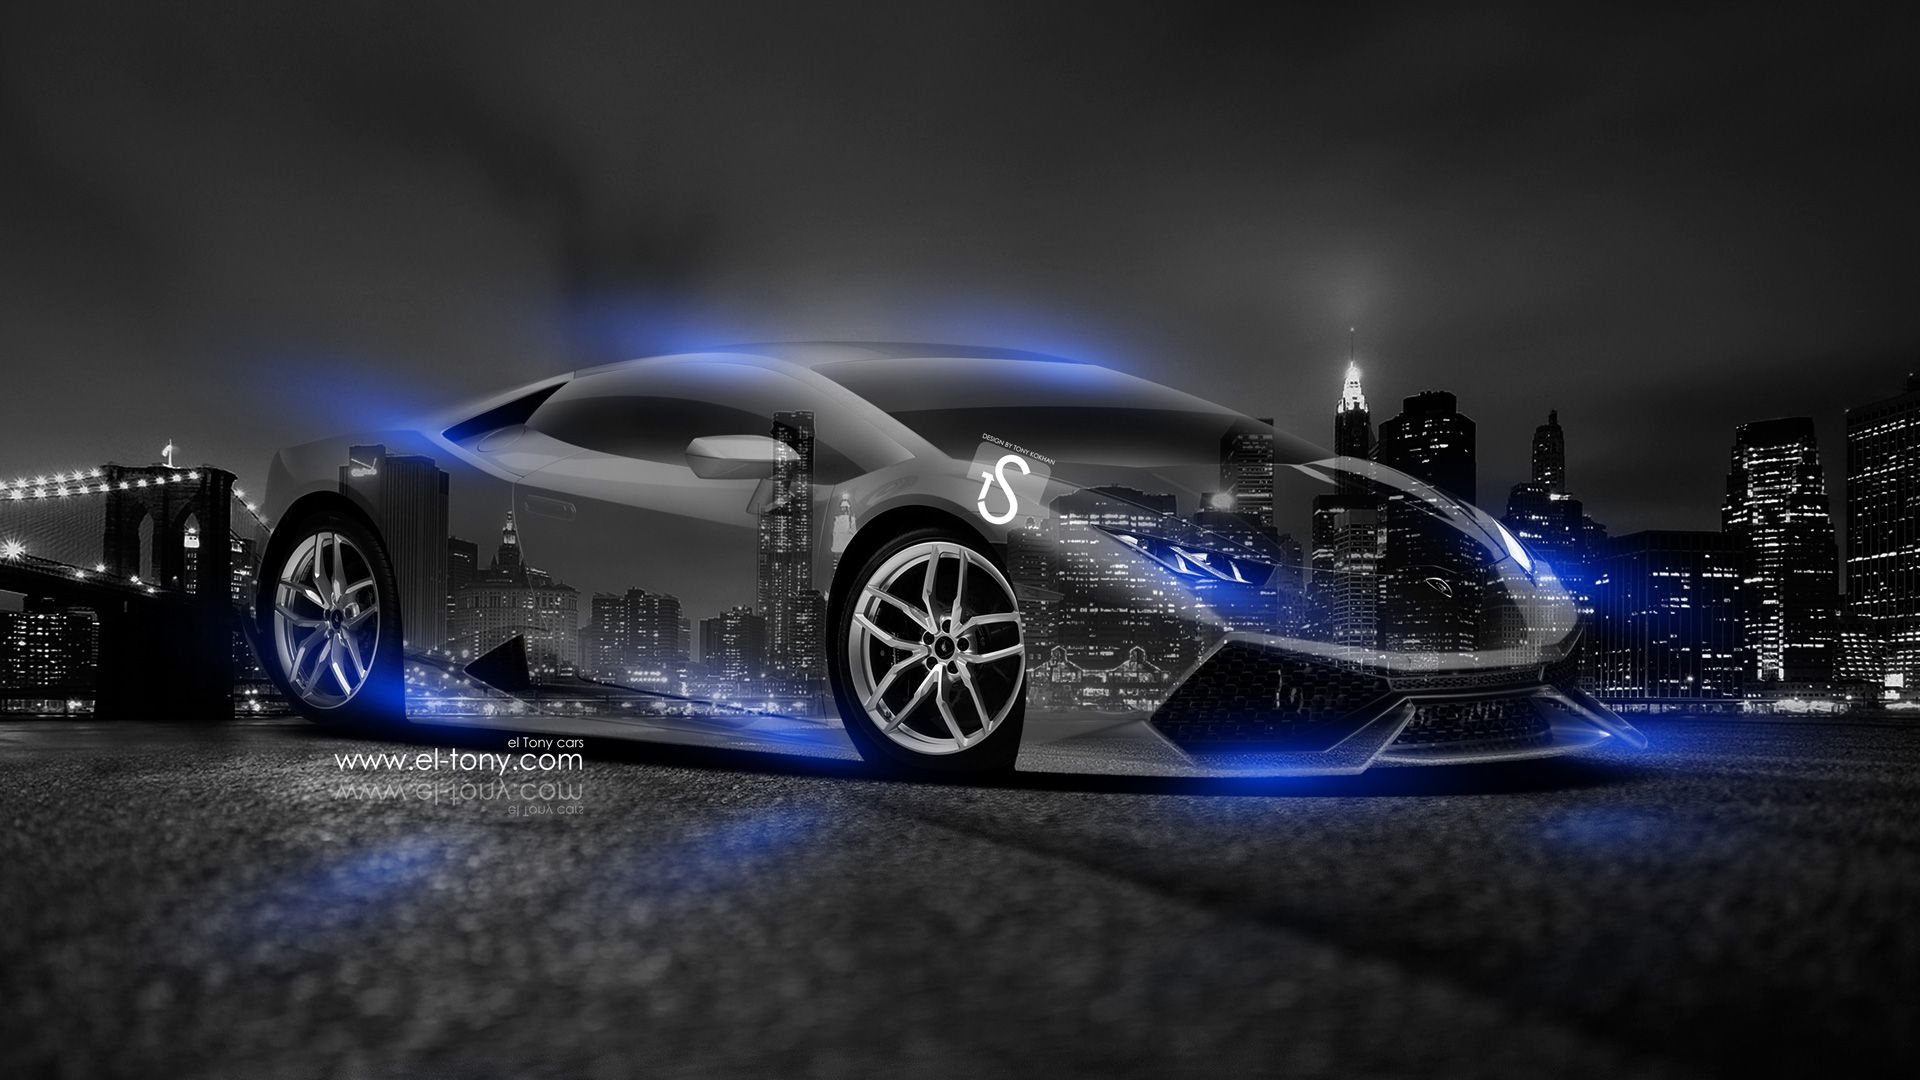 Black Lamborghini with Neon Blue Lights